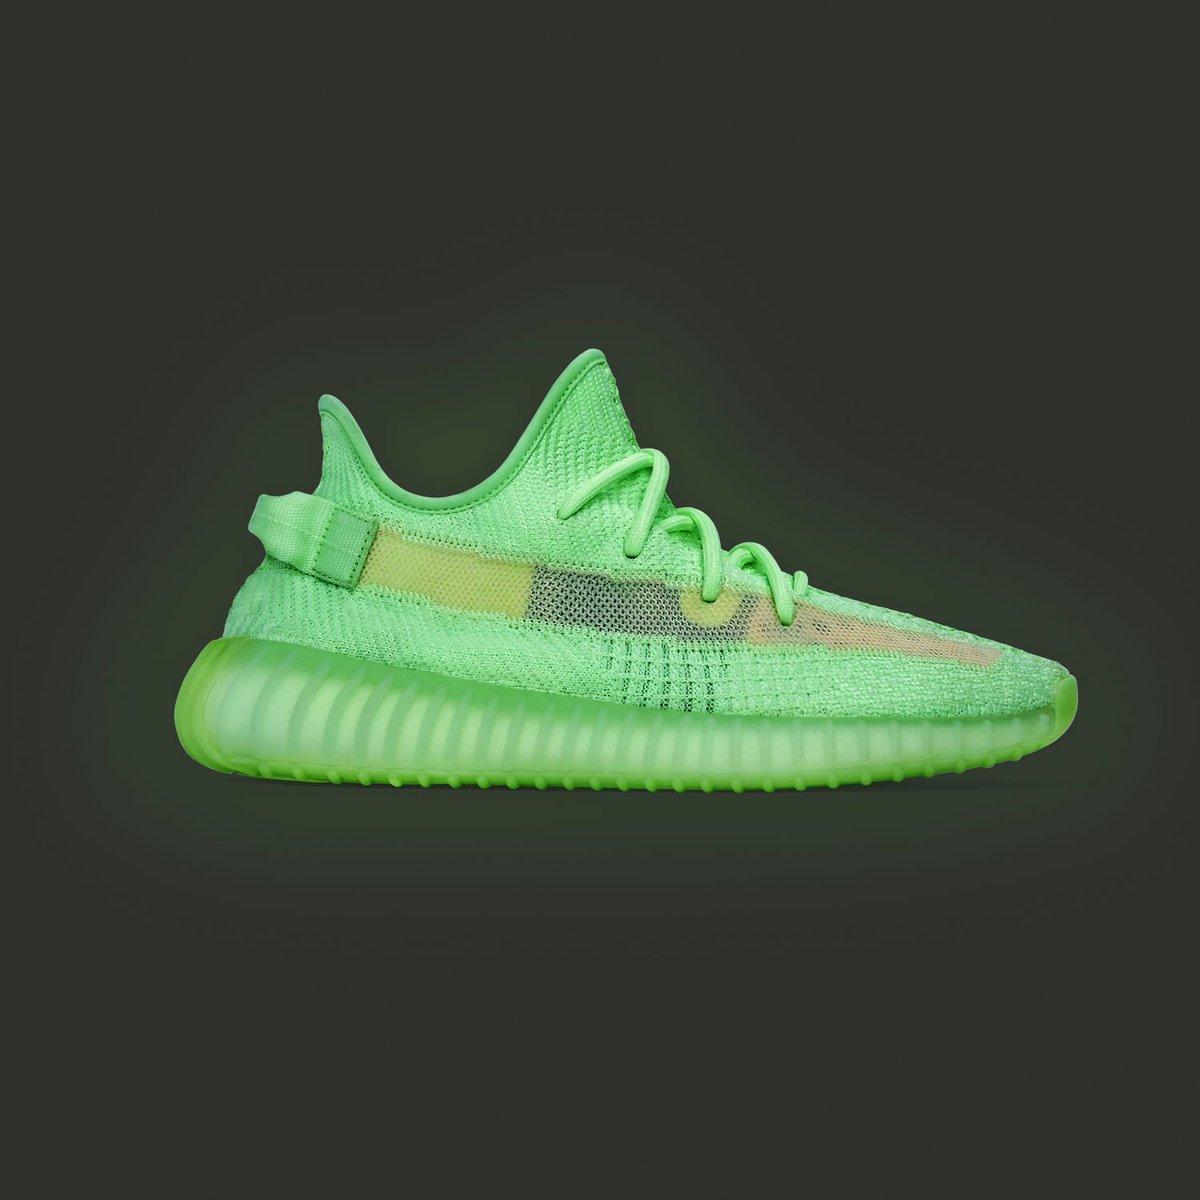 c89e5fdbb1ee7 YEEZY BOOST 350 V2 GID GLOW IN THE DARK RELEASING MAY 25 IN FULL FAMILY  SIZING PRE-ORDER WILL BE AVAILABLE ONE WEEK BEFORE ON http   YEEZYMAFIA.